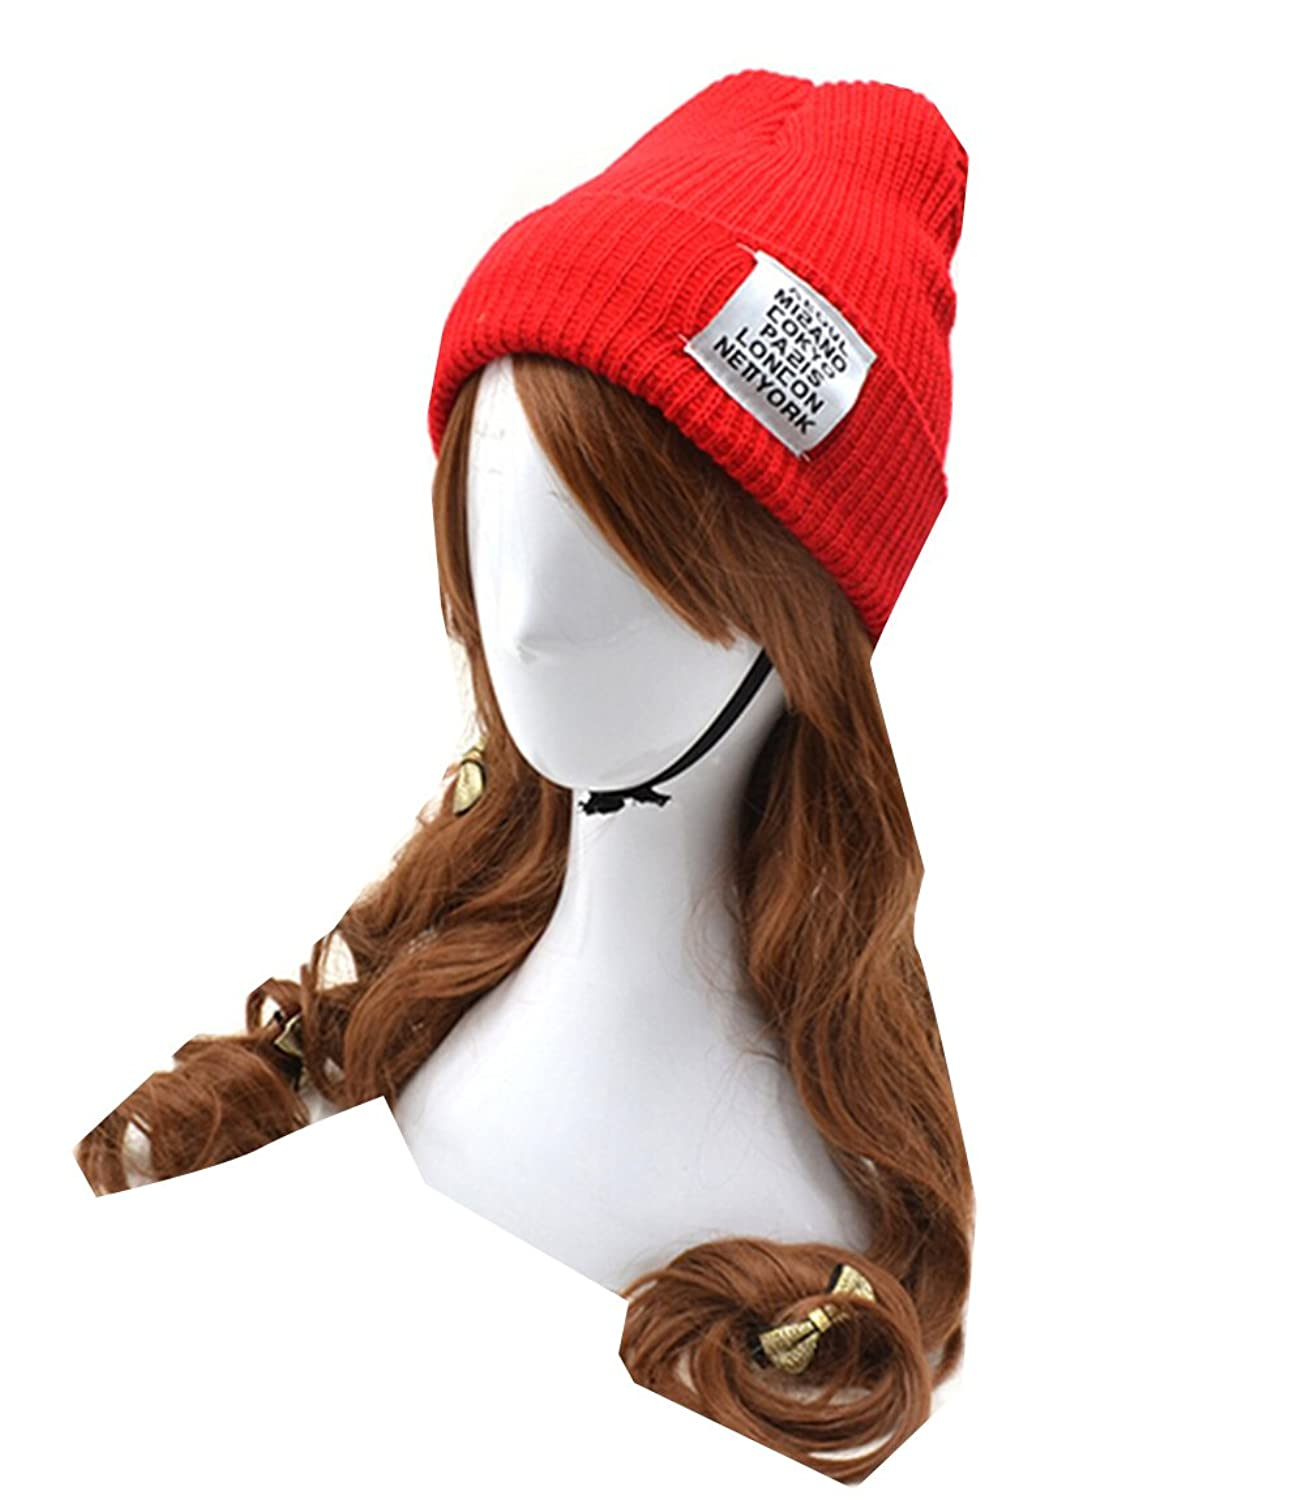 Km Unisex Fashion Autumn and Winter Letter Thicken Hat Warmth Knitted Cap